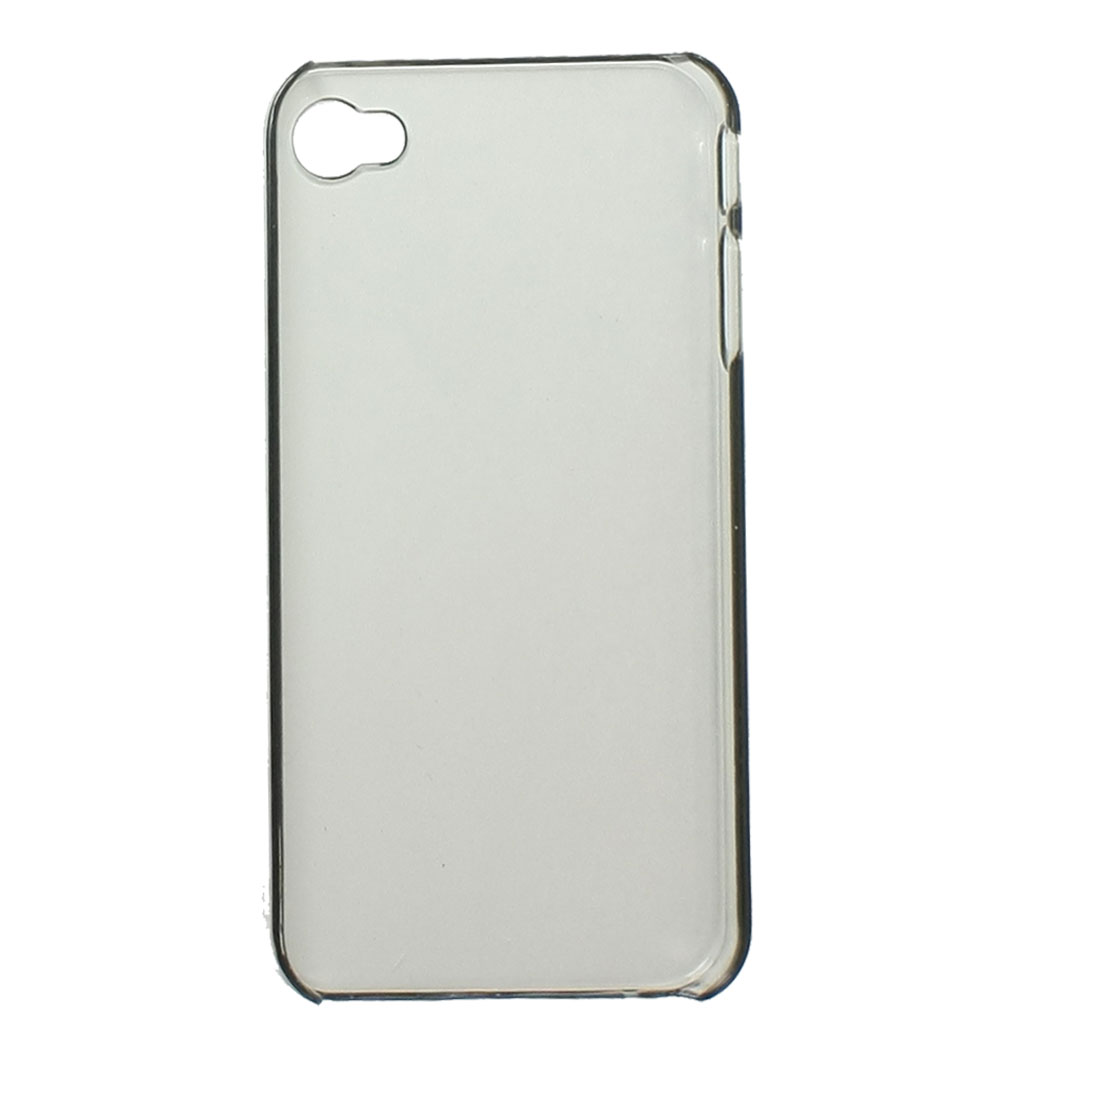 Protective Clear Black Hard Plastic Cover Guard for iPhone 4 4G 4S 4GS